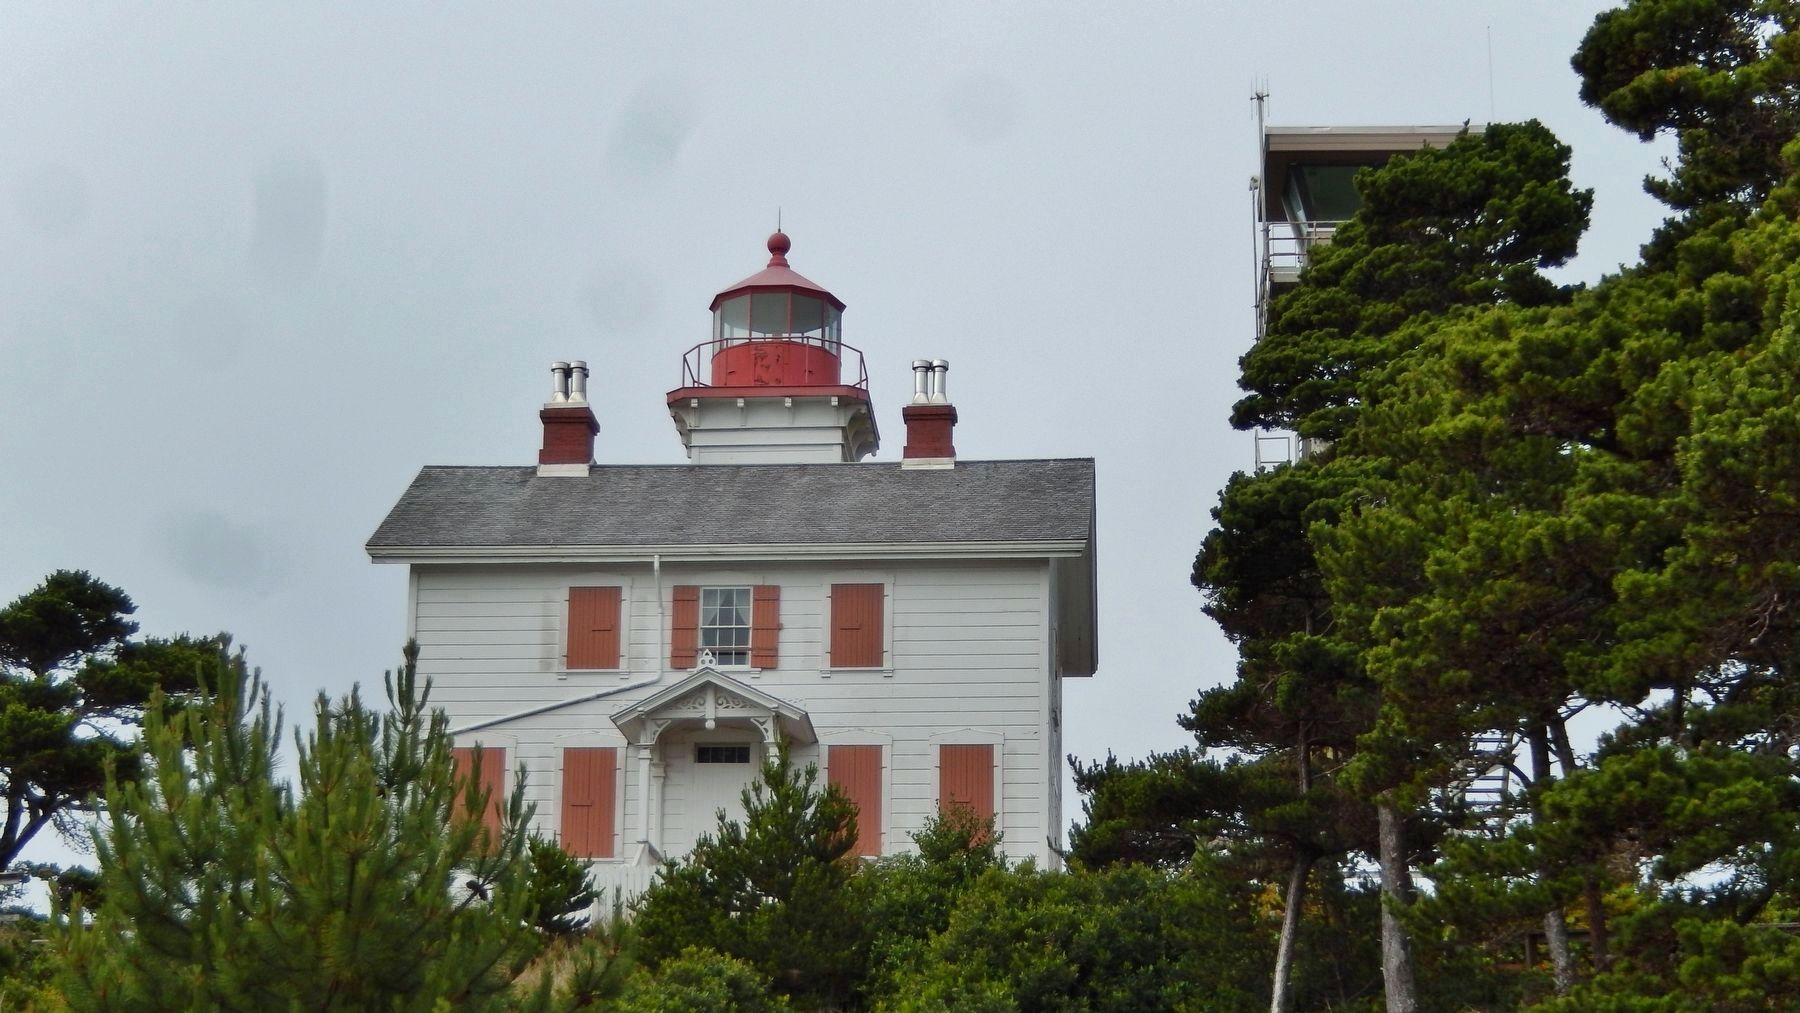 Yaquina Bay Lighthouse (<i>view from near marker</i>) image. Click for full size.